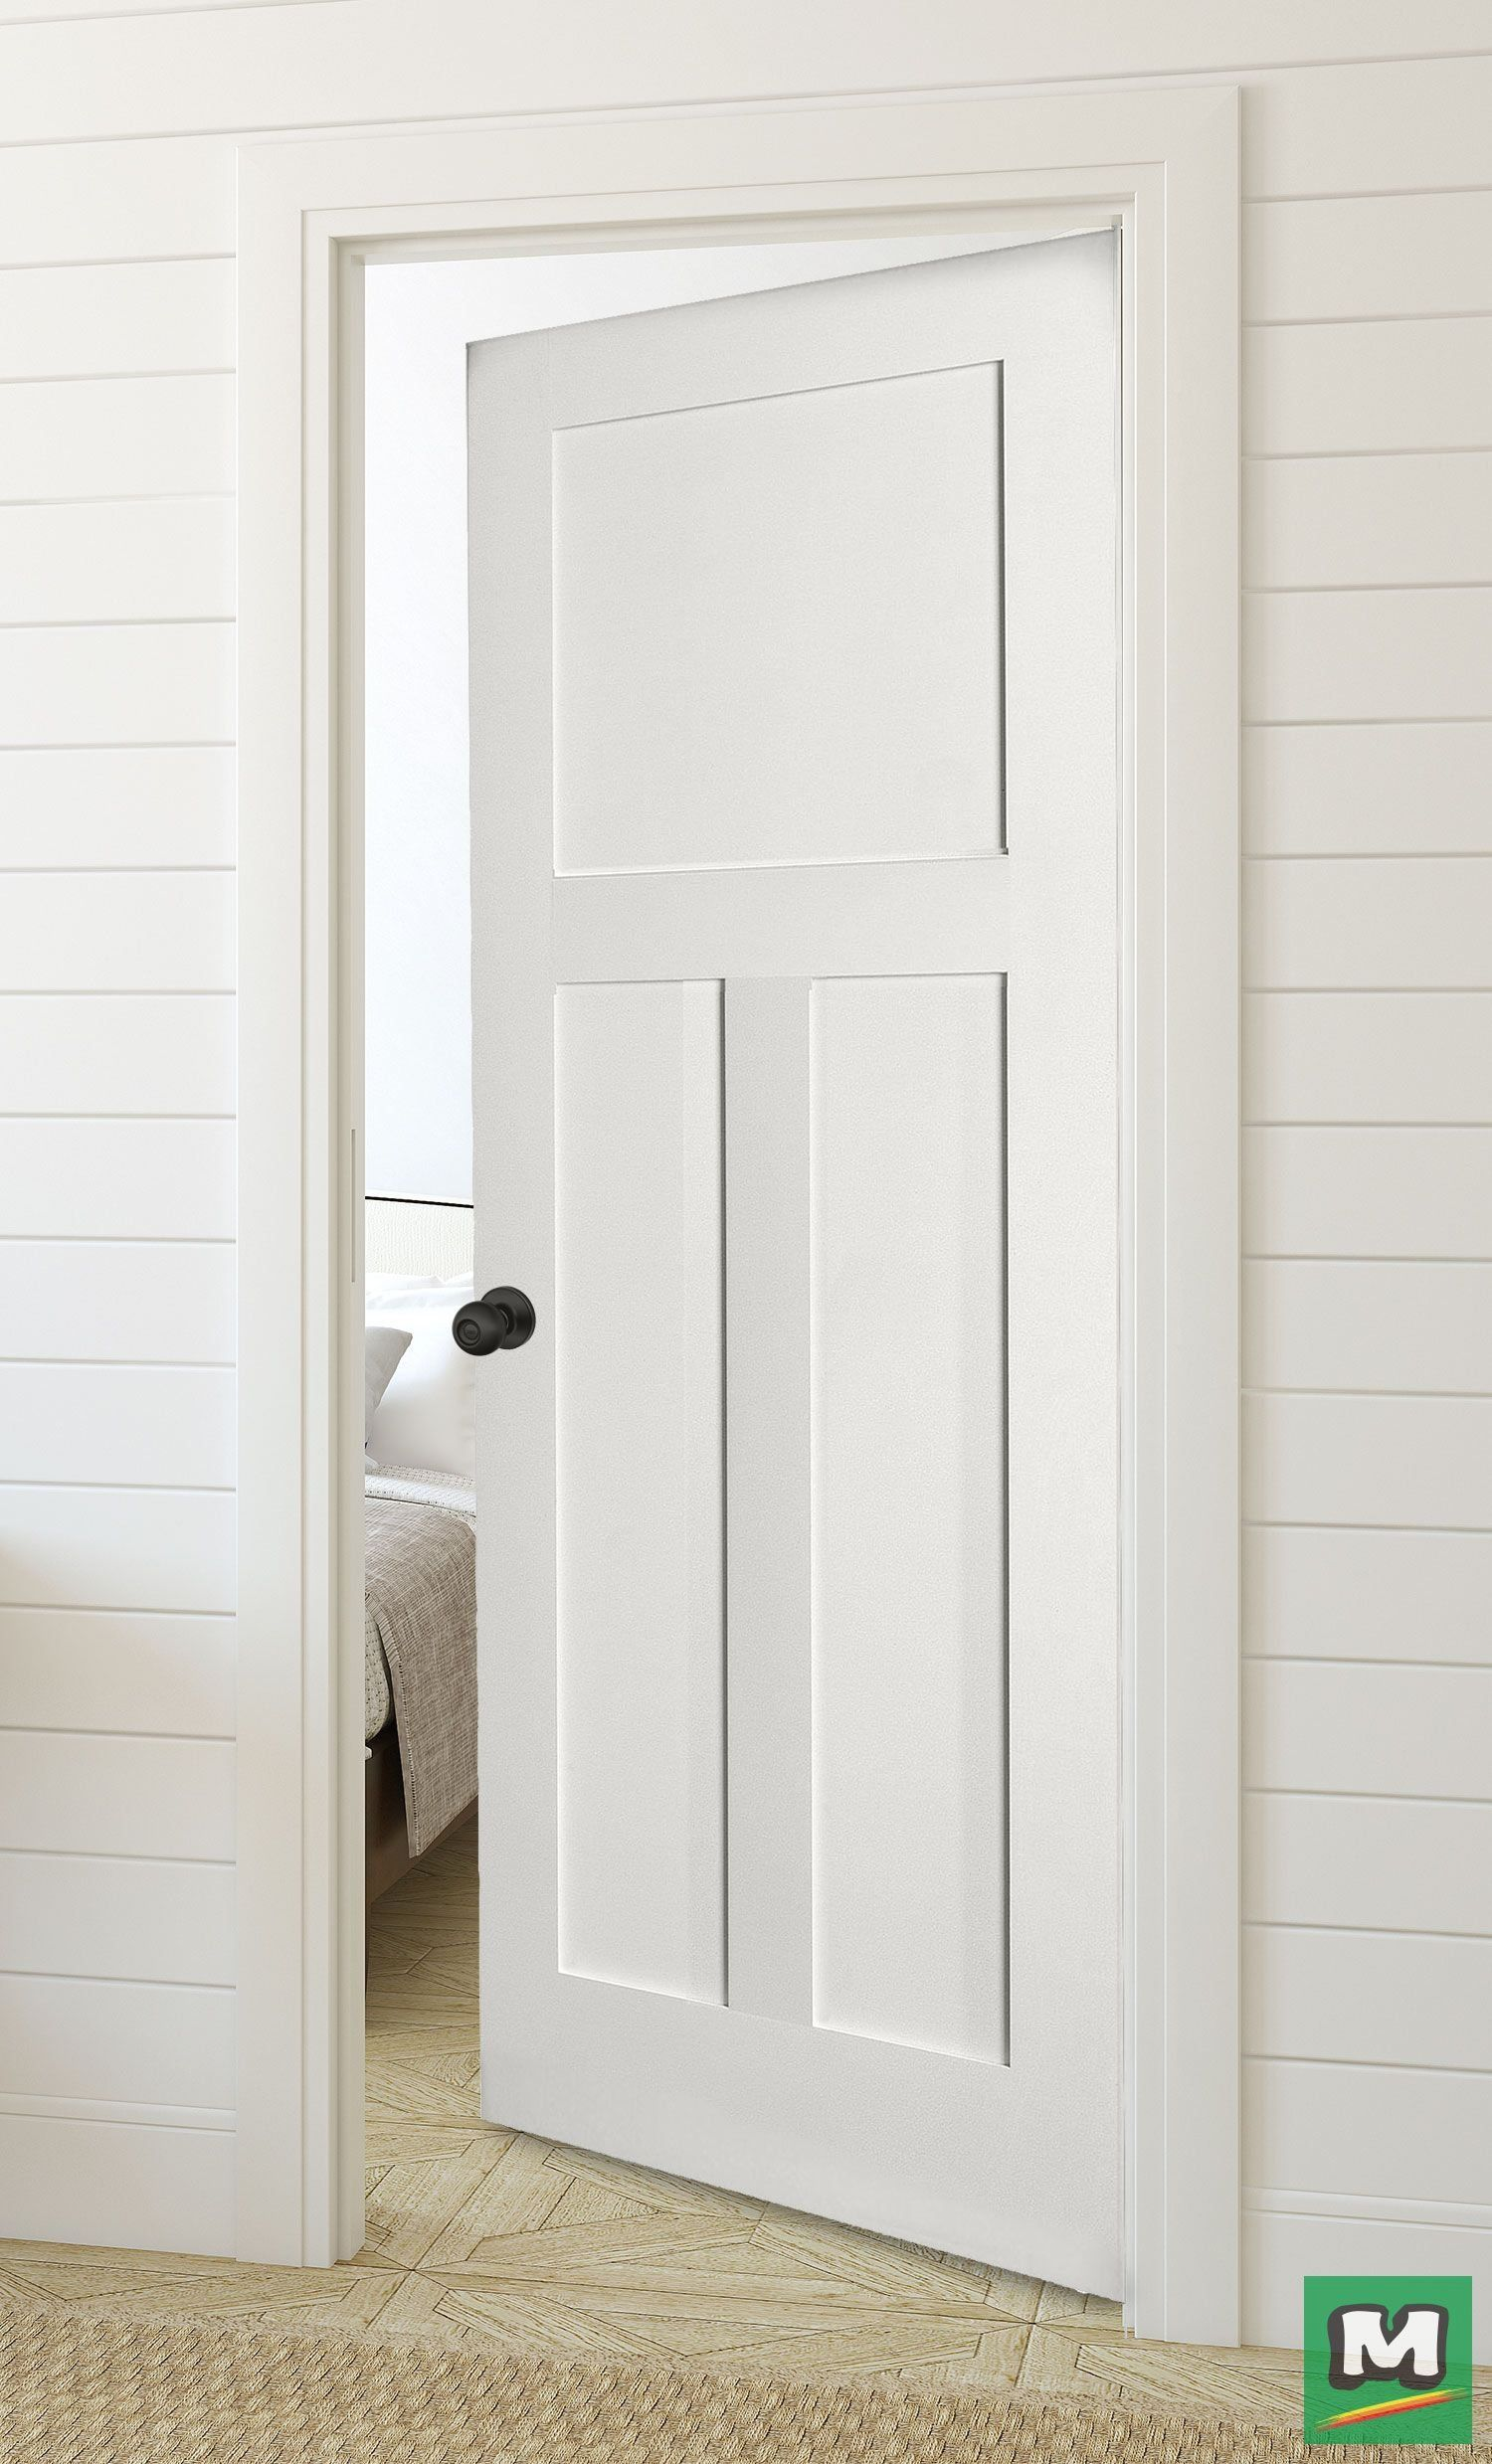 The Three Panel Door From Mastercraft Offers The Look Of A Handcrafted Door Wi 1000 In 2020 Prehung Interior Doors White Interior Doors Black Interior Doors